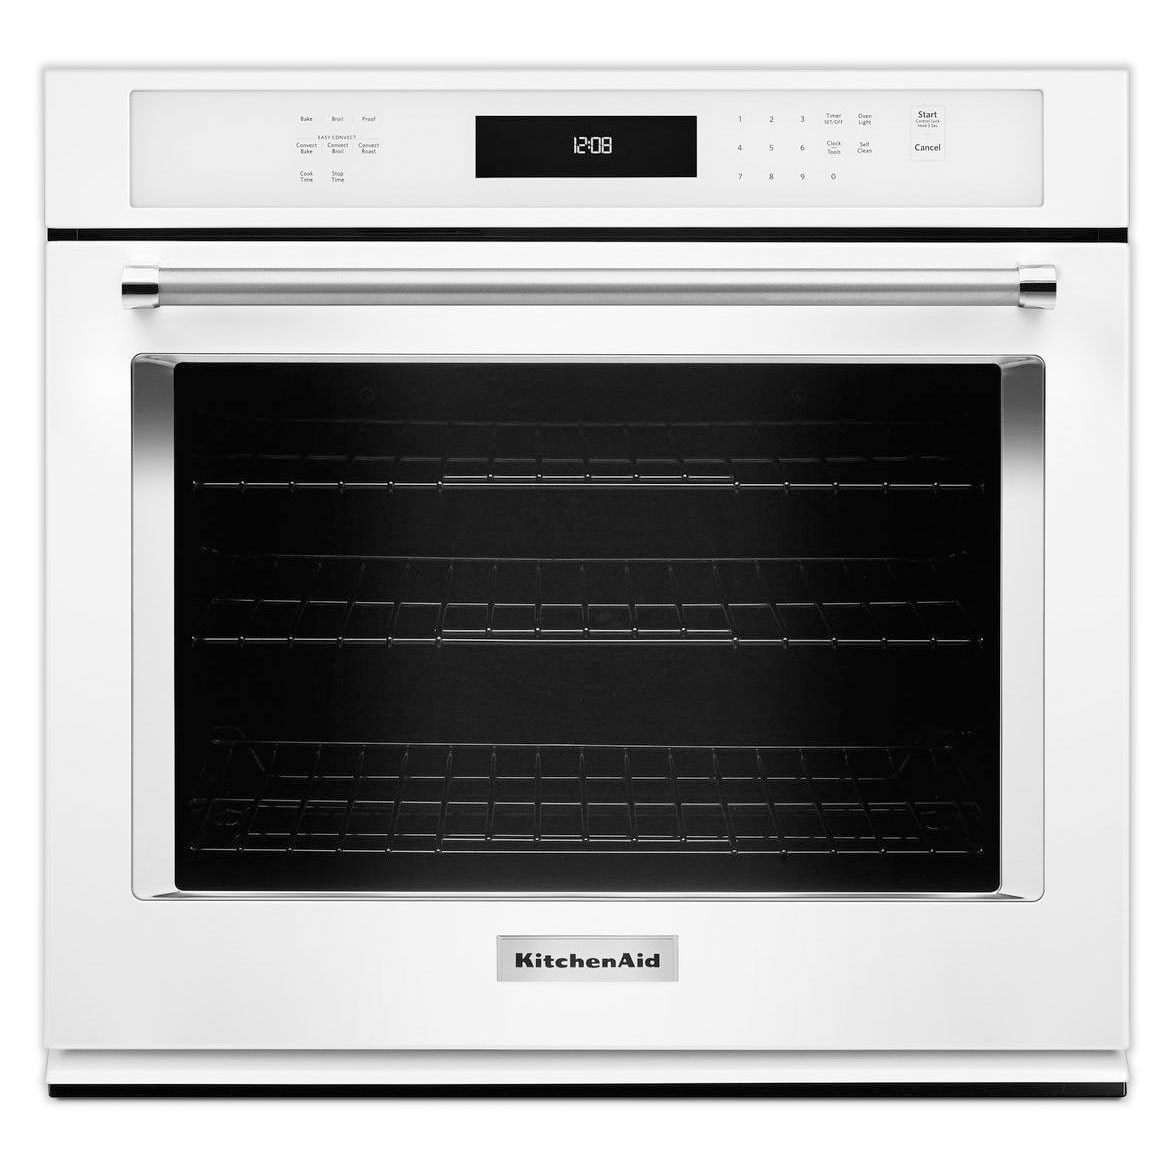 KitchenAid White Convection Wall Oven (5.0 Cu. Ft.) - KOSE500EWH